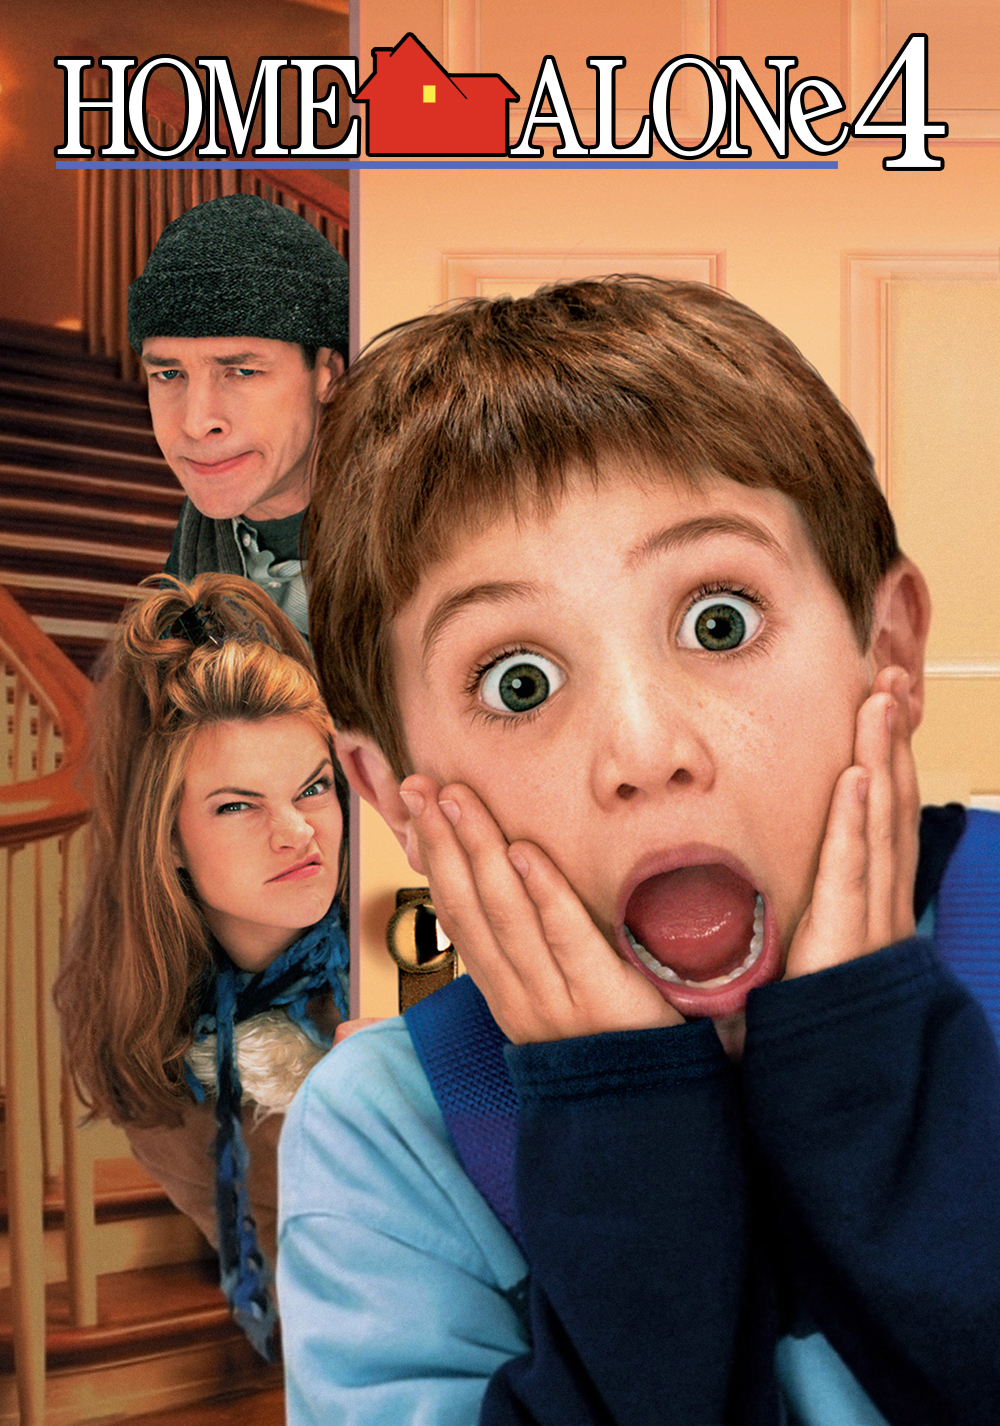 Home Alone 4 (2002) ταινιες online seires oipeirates greek subs